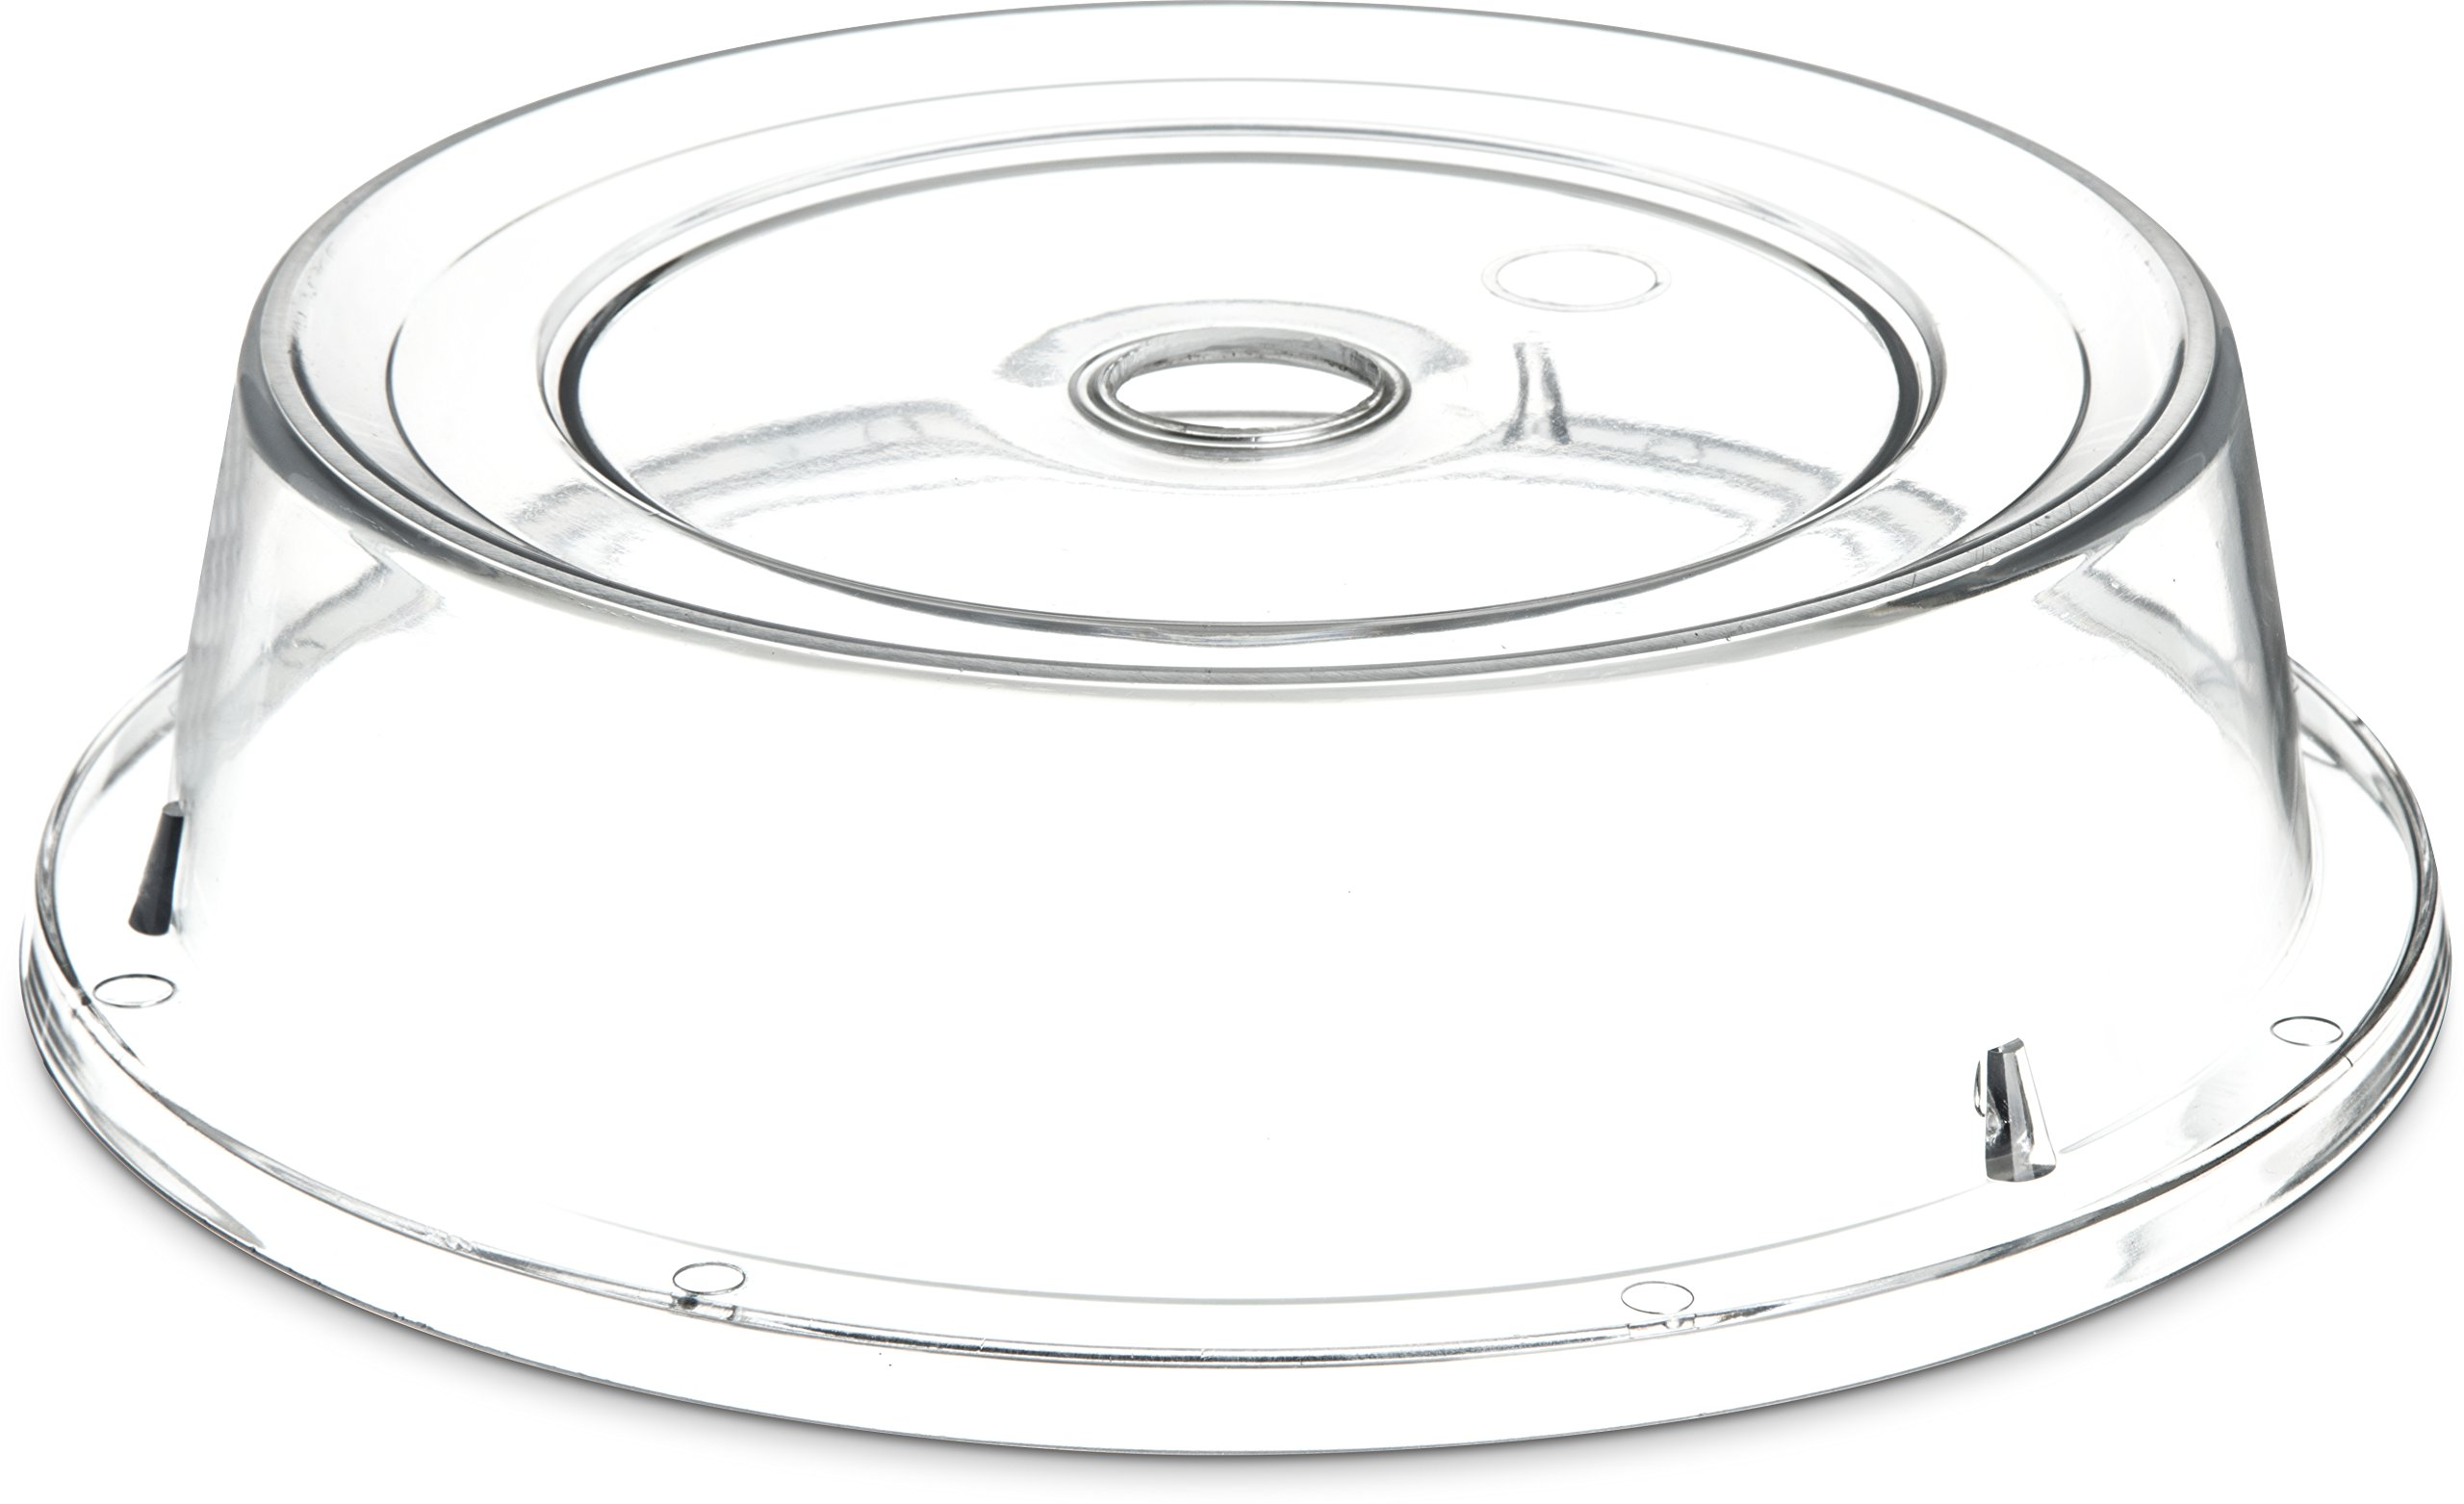 Carlisle 190007 Polycarbonate Plate Cover, 9.37'' Bottom Diameter x 2.56'' Height, Clear (Case of 12)